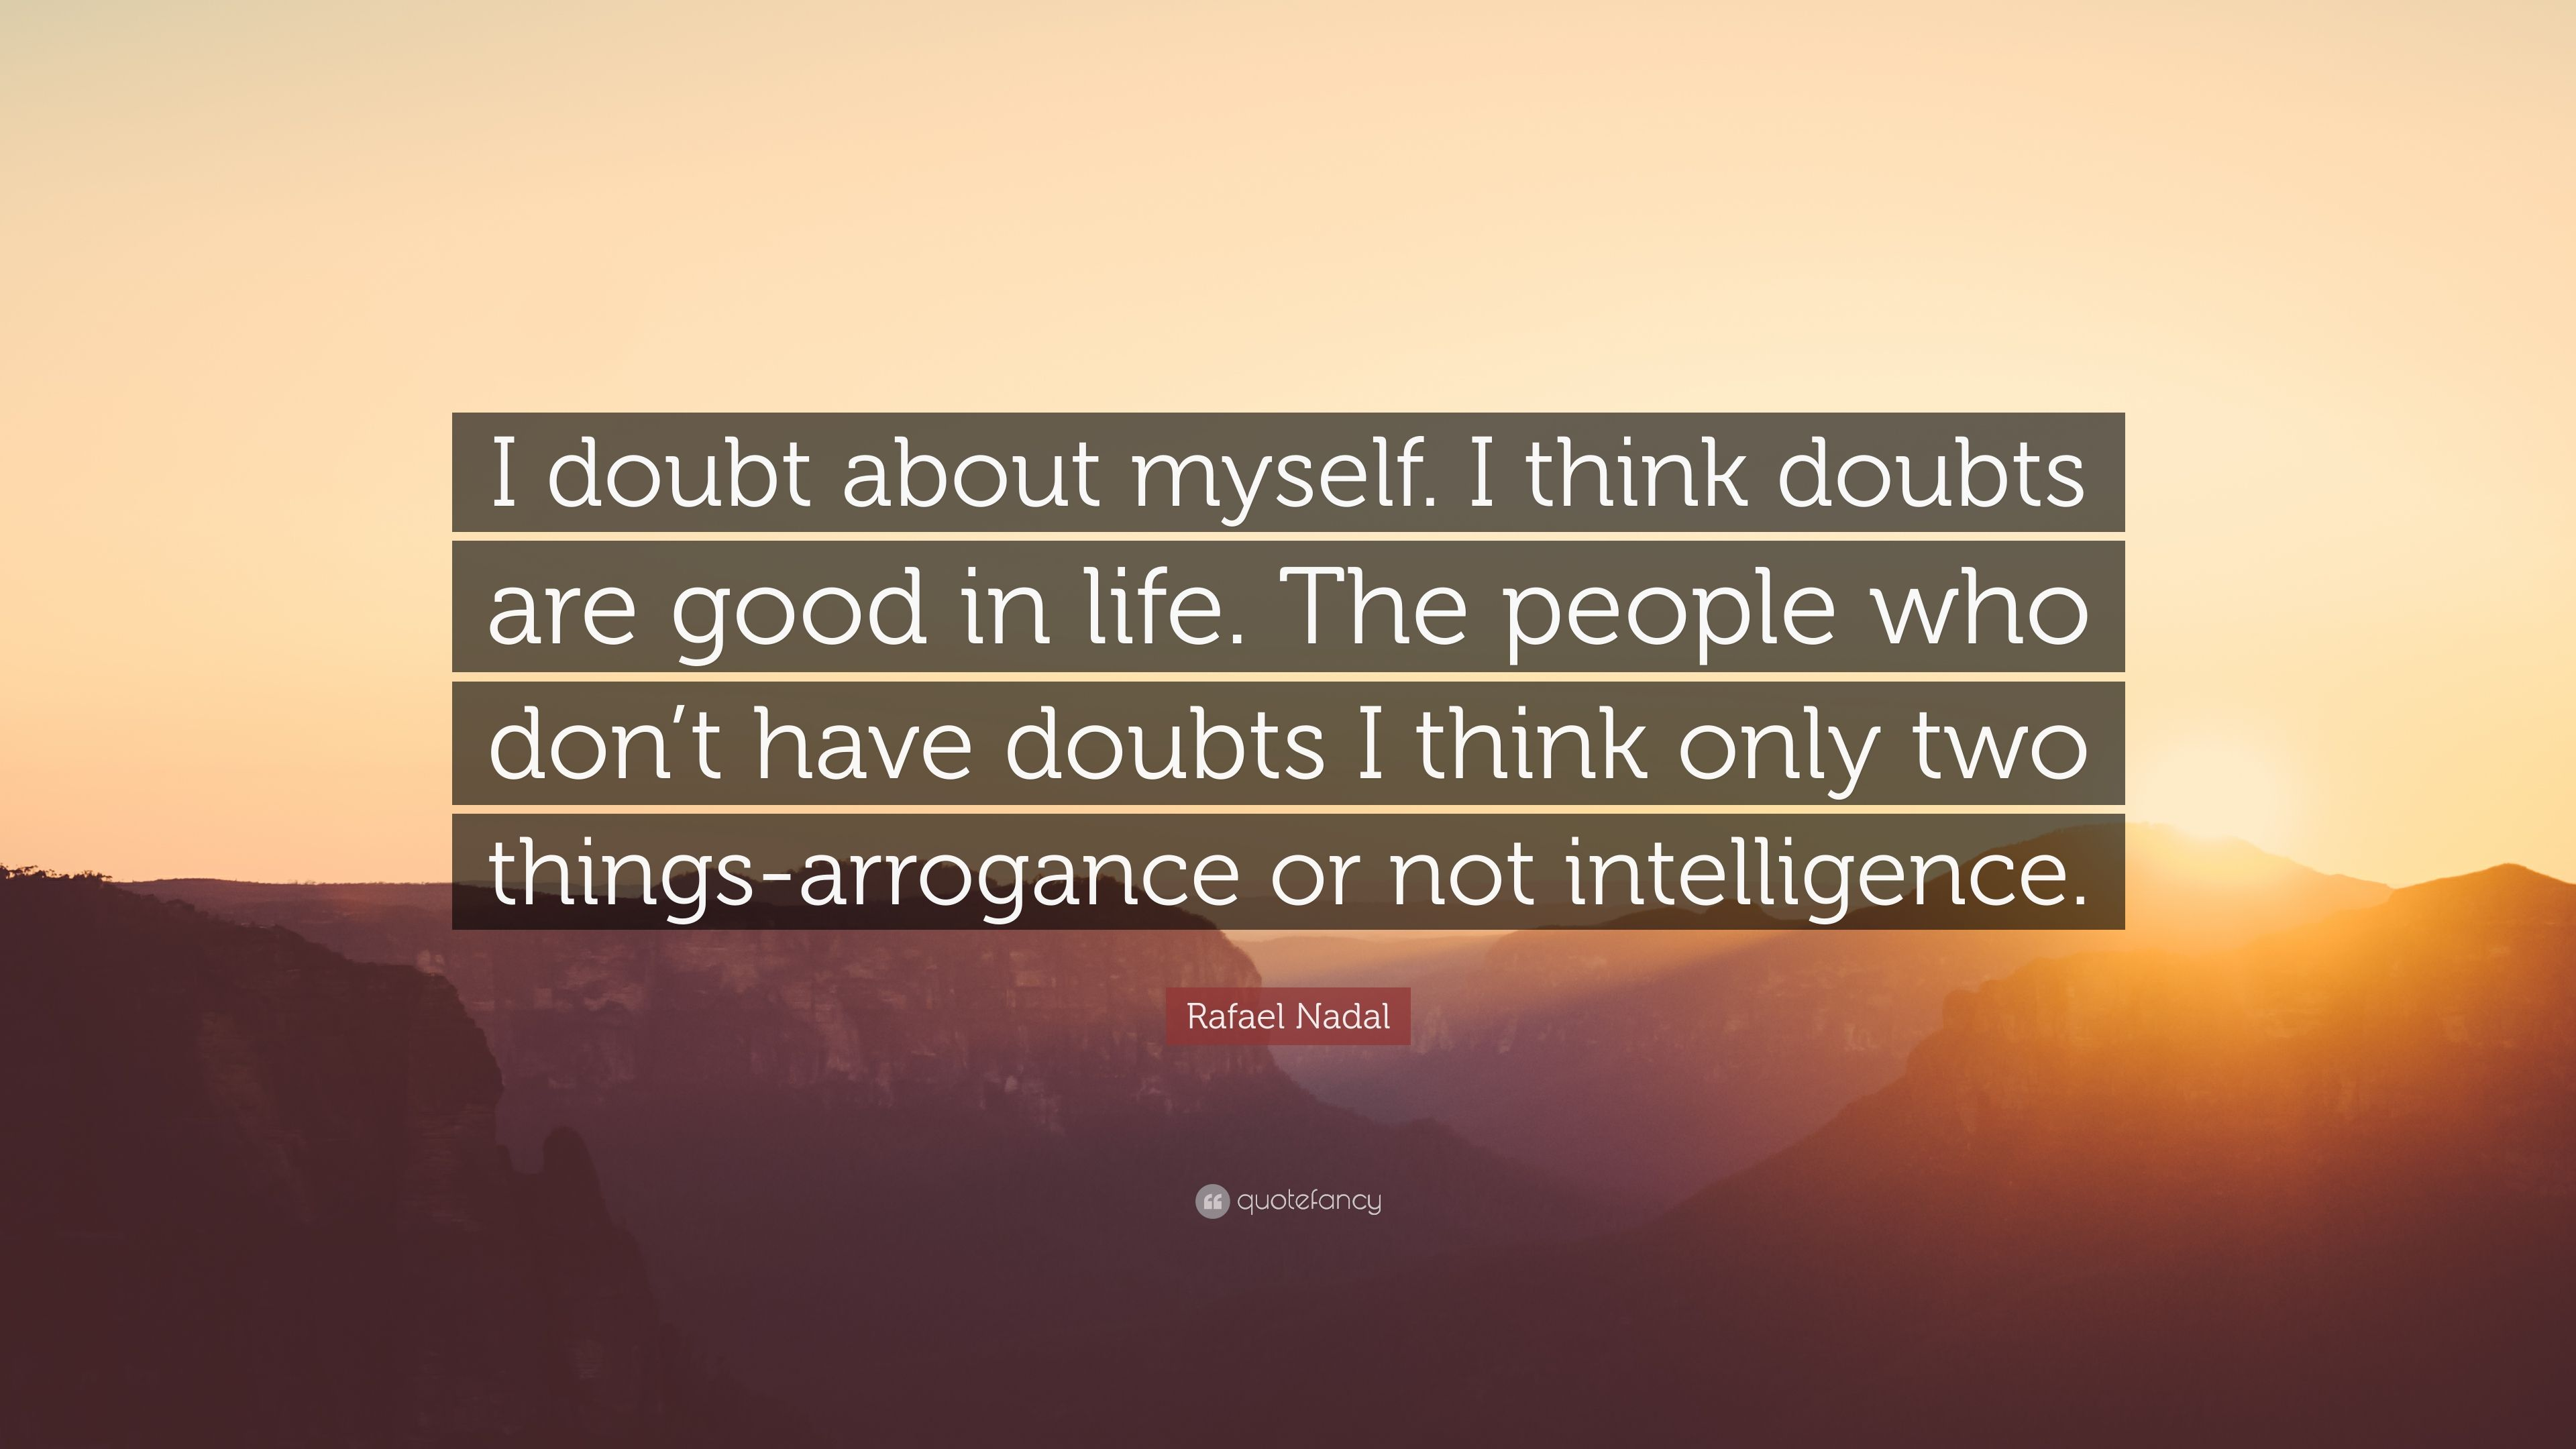 Rafael Nadal Quote I Doubt About Myself I Think Doubts Are Good In Life The People Who Don T Have Doubts I Think Only Two Things Arroganc 7 Wallpapers Quotefancy